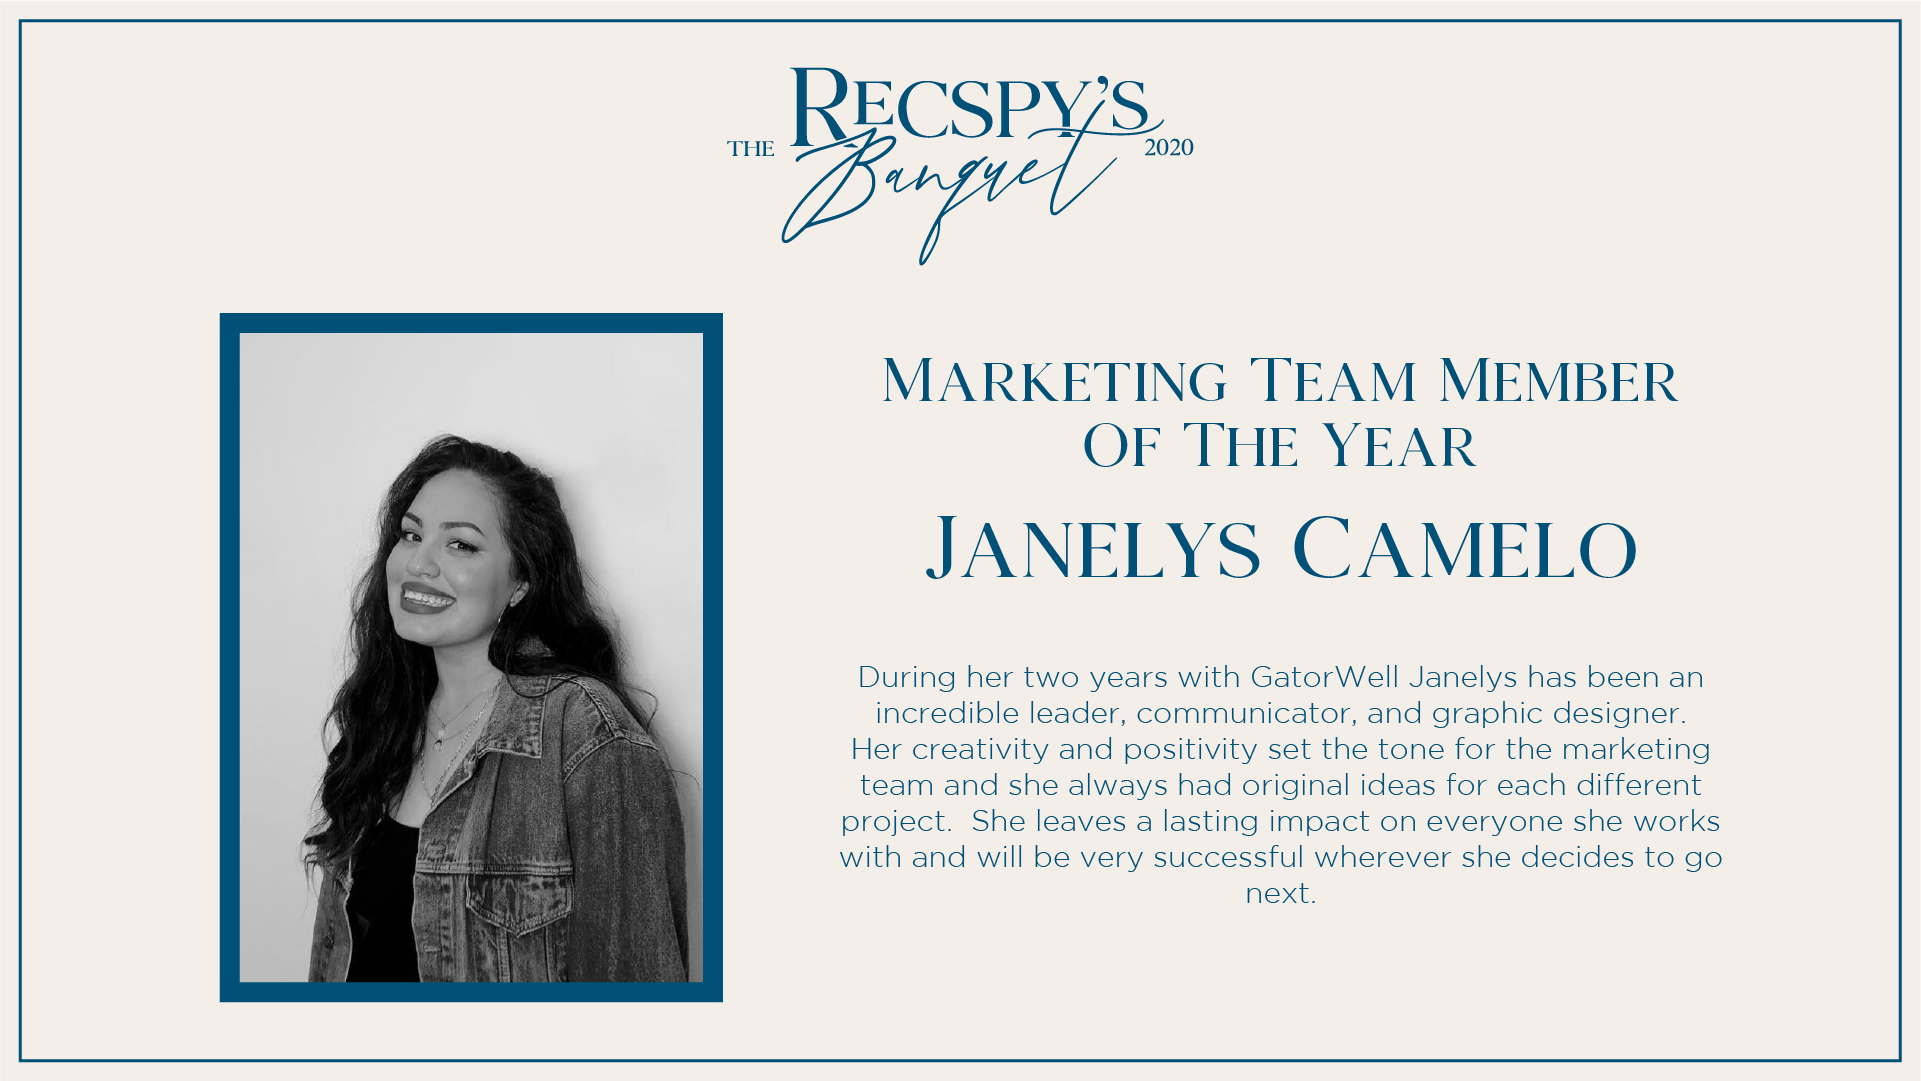 Janelys Camelo: GatorWell Marketing Team Member of the Year